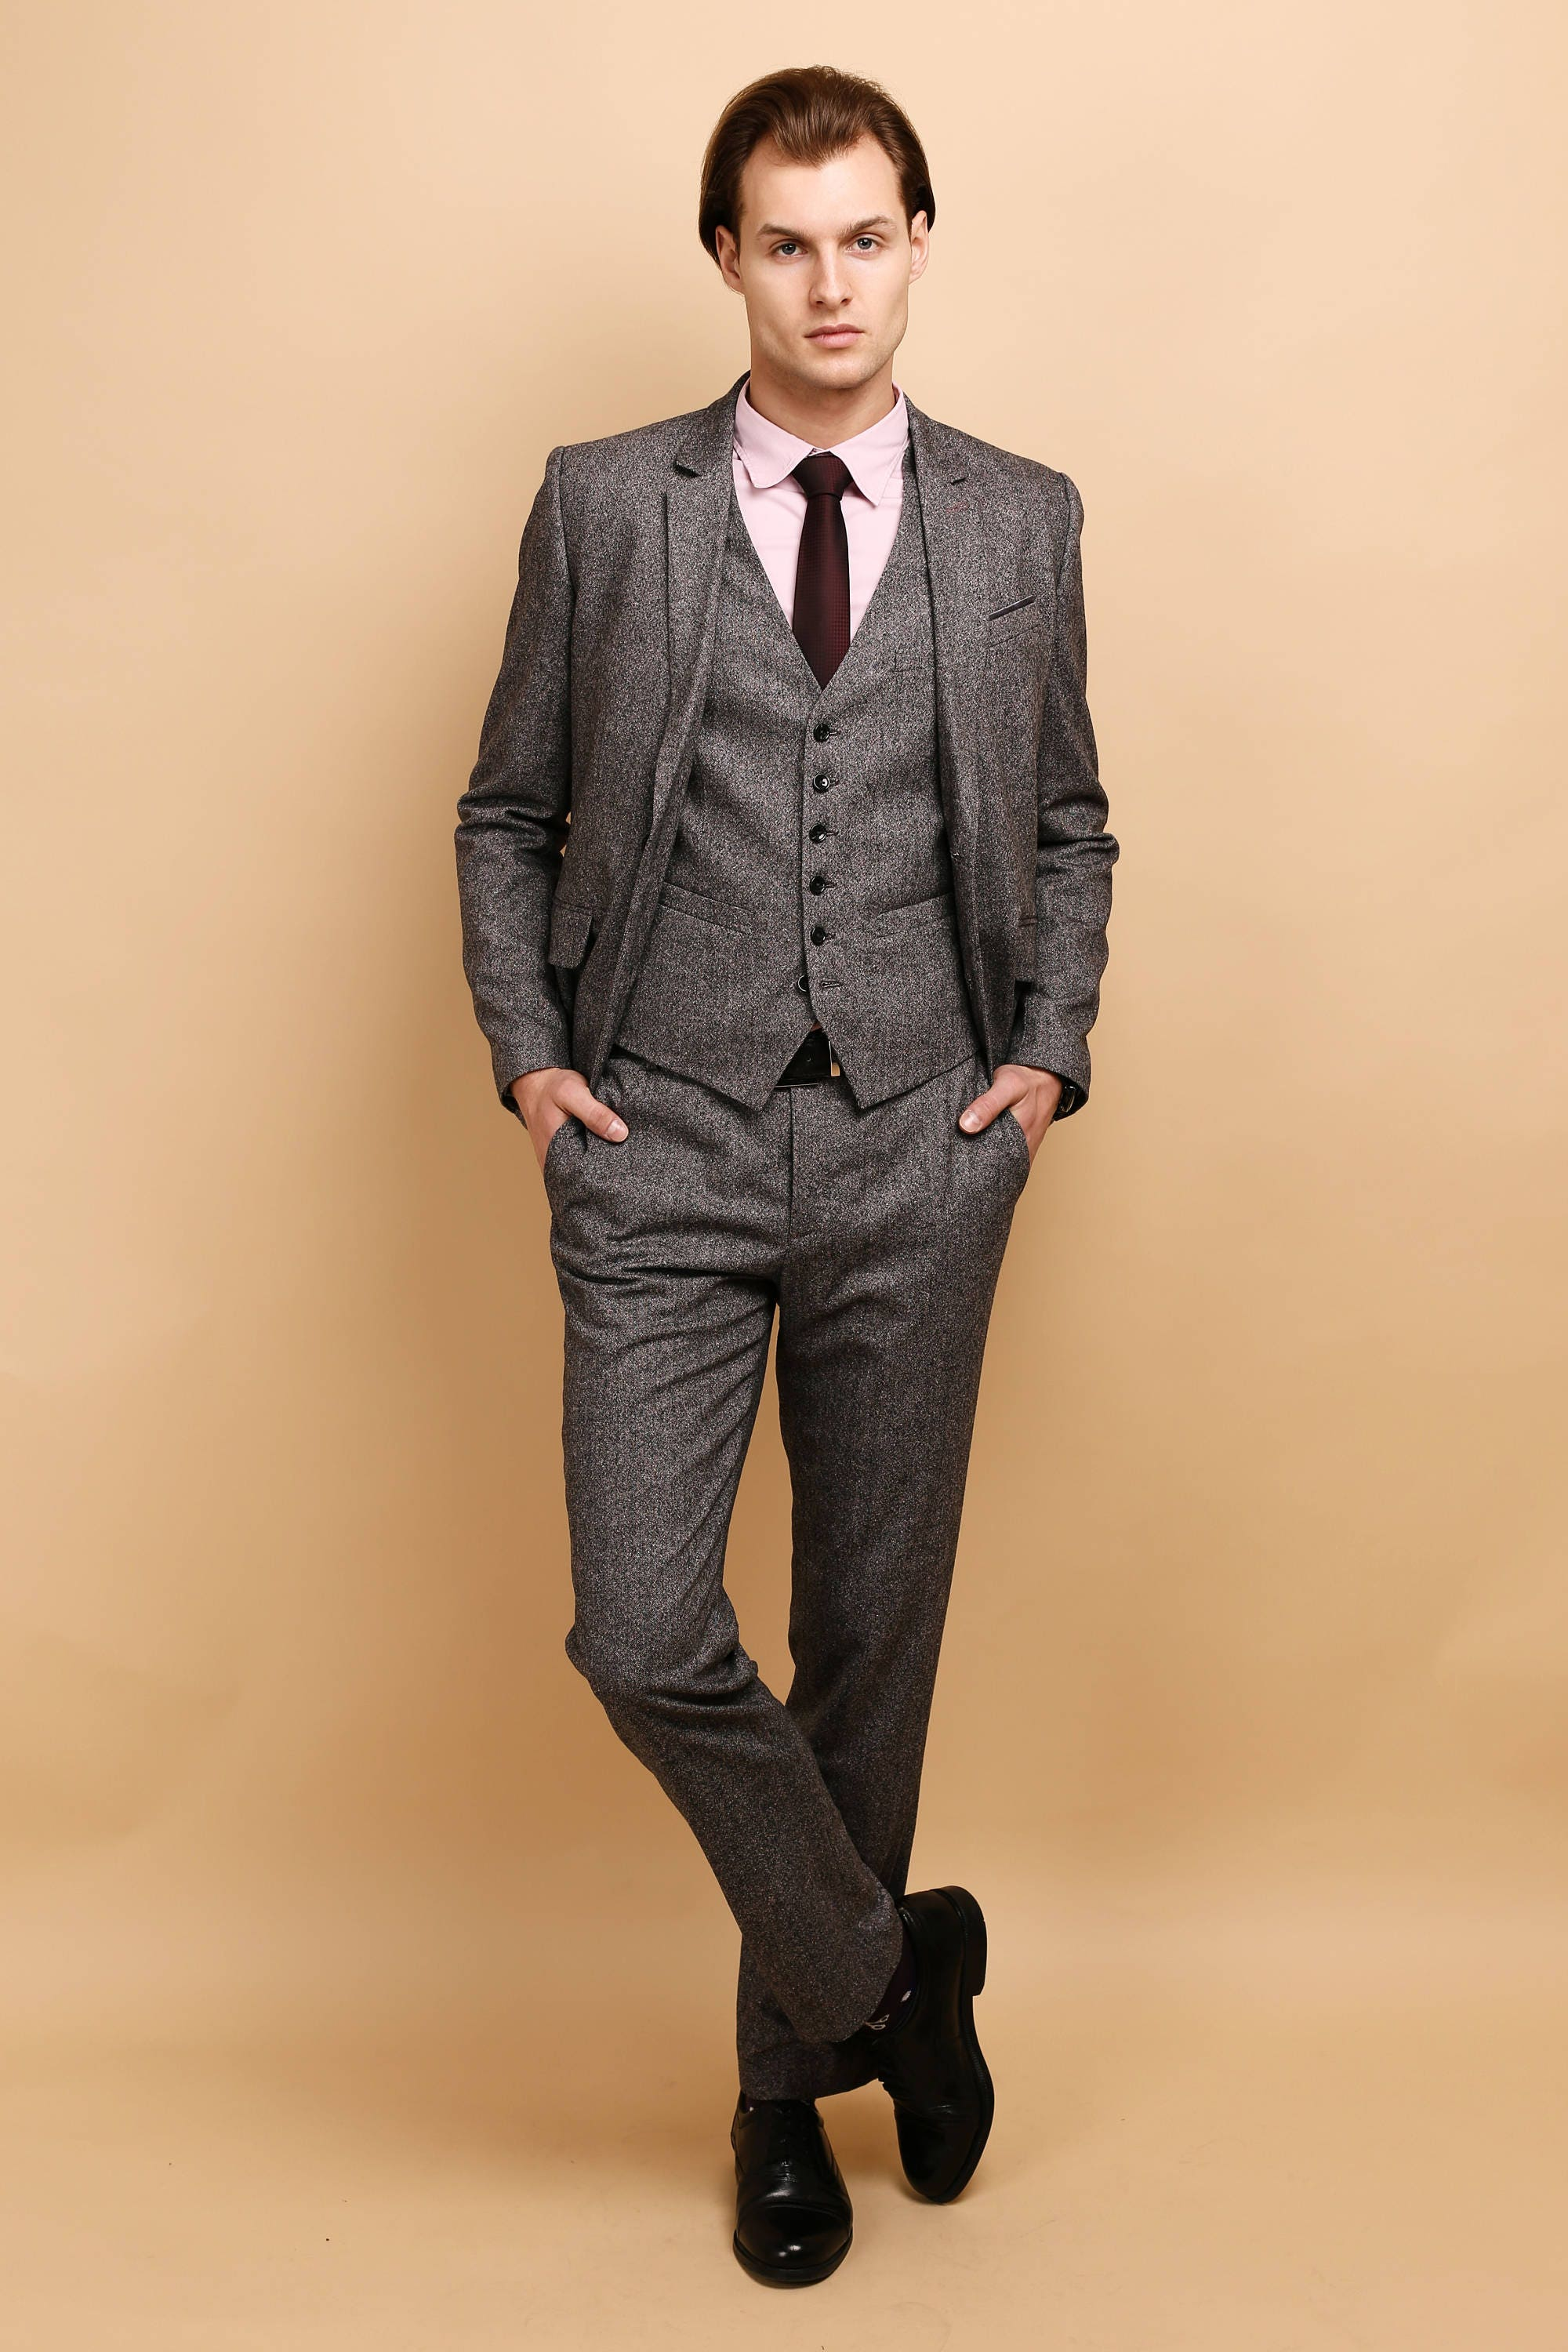 Find great deals on eBay for Mens 3 Piece Suit in Suits for Men. Shop with confidence. Find great deals on eBay for Mens 3 Piece Suit in Suits for Men. Shop with confidence. GREY VELVET LIKE MANNEQUIN HEAD. CHECK OUT OTHER FOAM MANNEQUIN HEADS WE HAVE. GREY MANNEQUIN HEAD. Flap pocket, dual side vents Flat front pants.